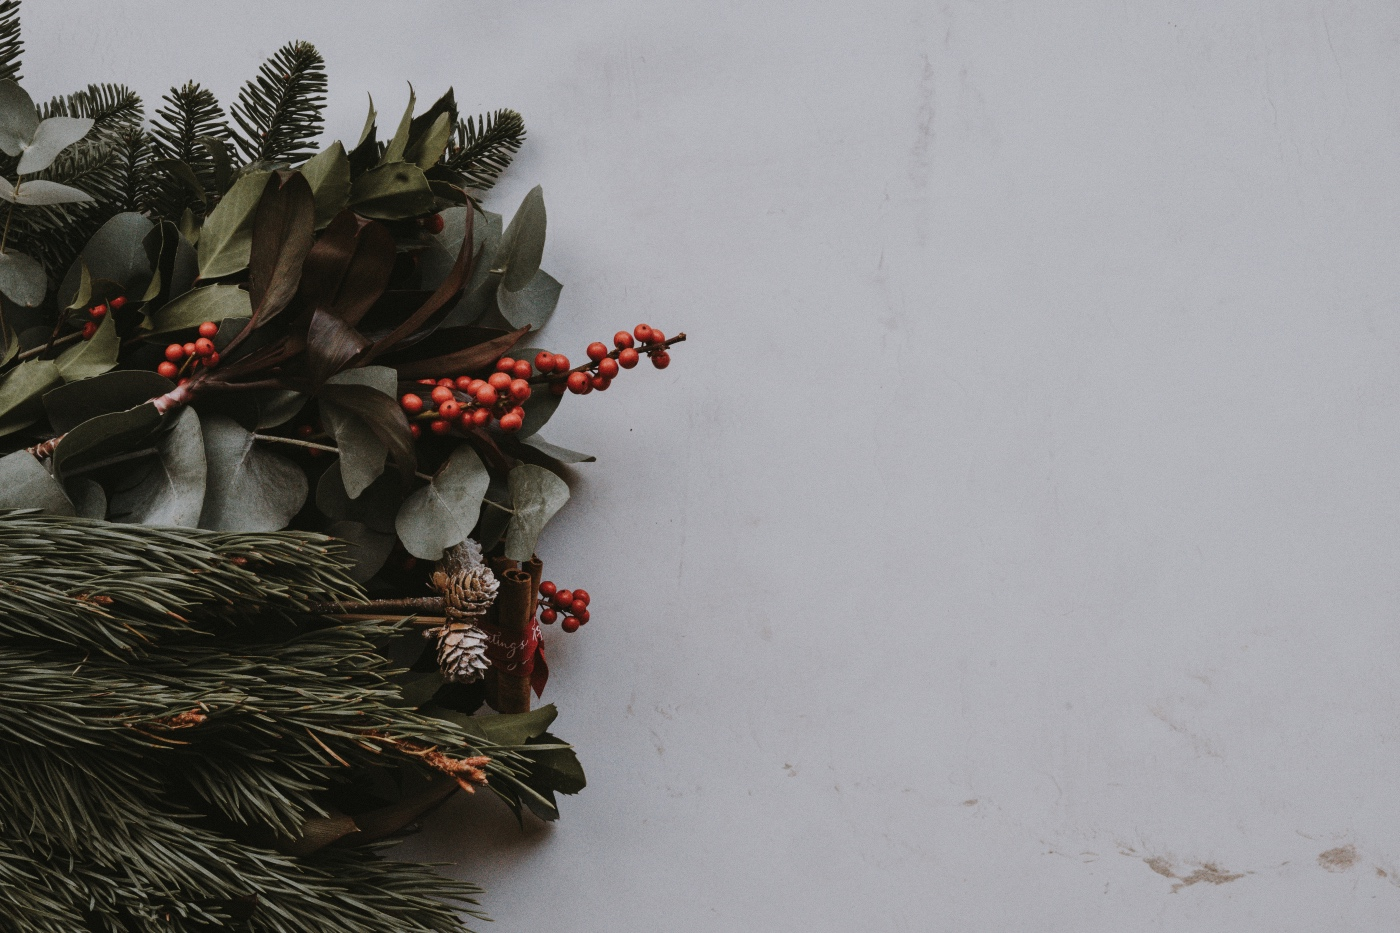 pinecones, pine, and greens to add to a winter bouquet of flowers